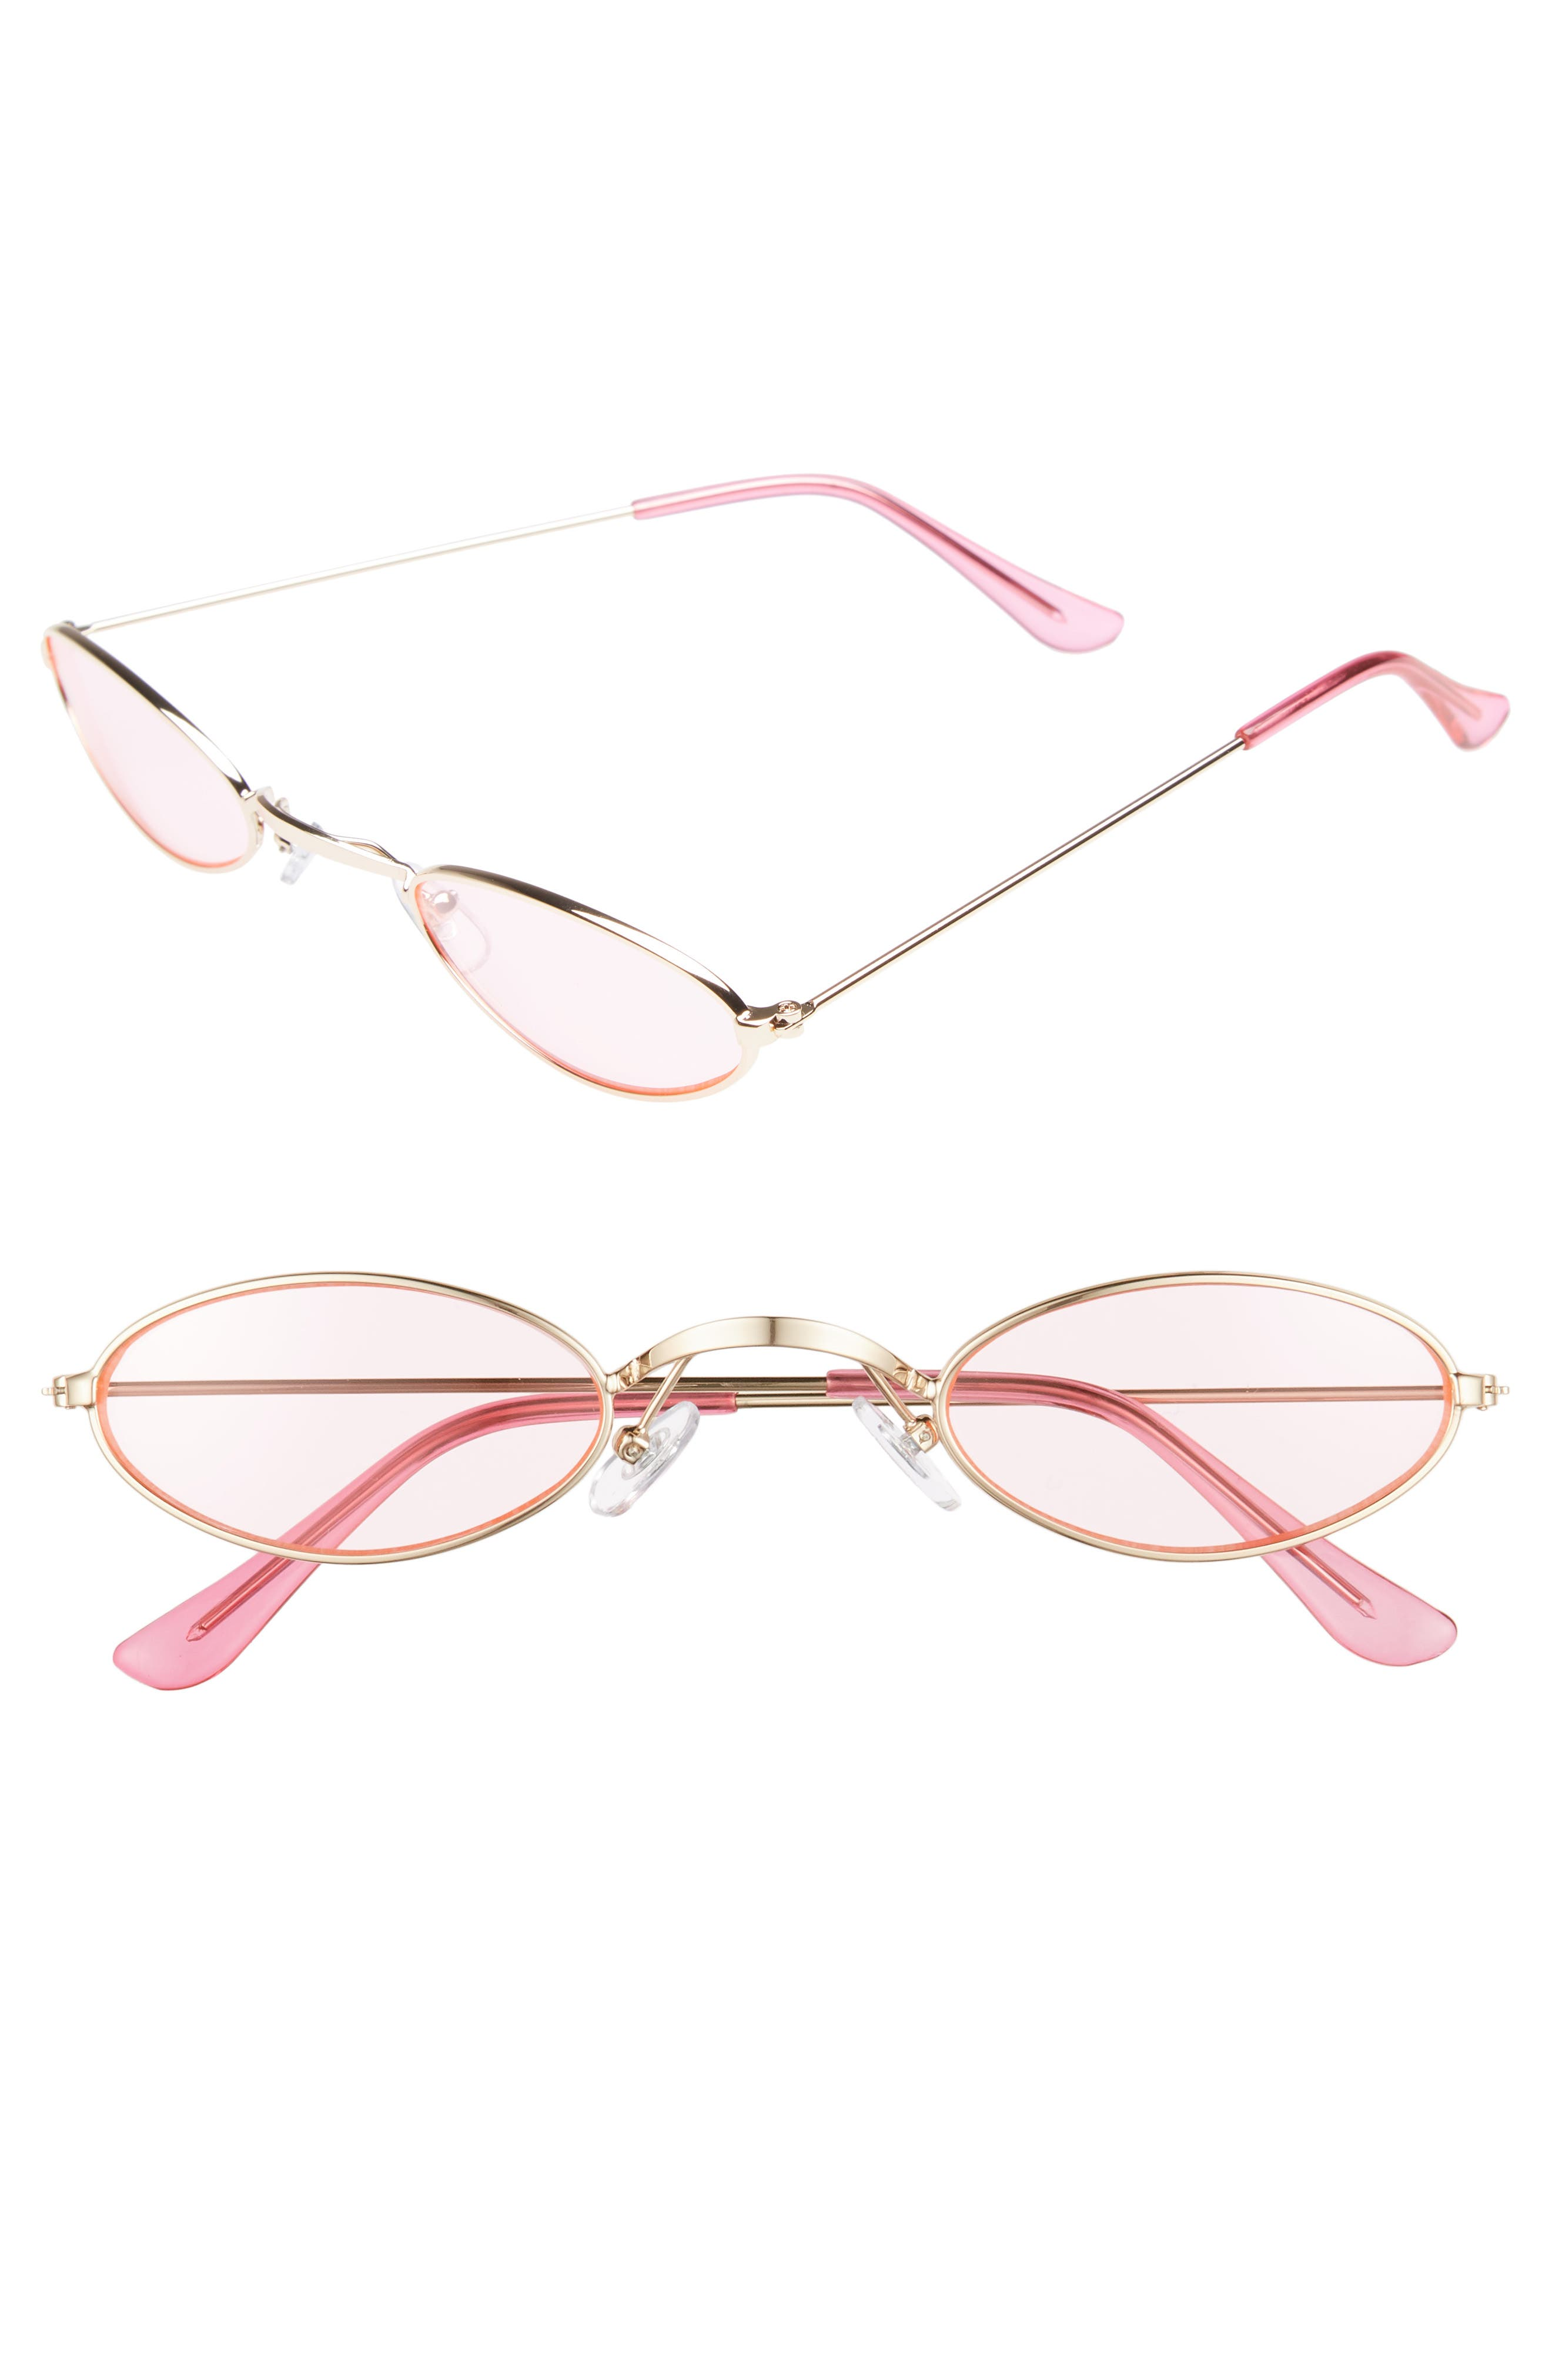 48mm Mini Wide Oval Metal Sunglasses,                         Main,                         color, PINK/ GOLD